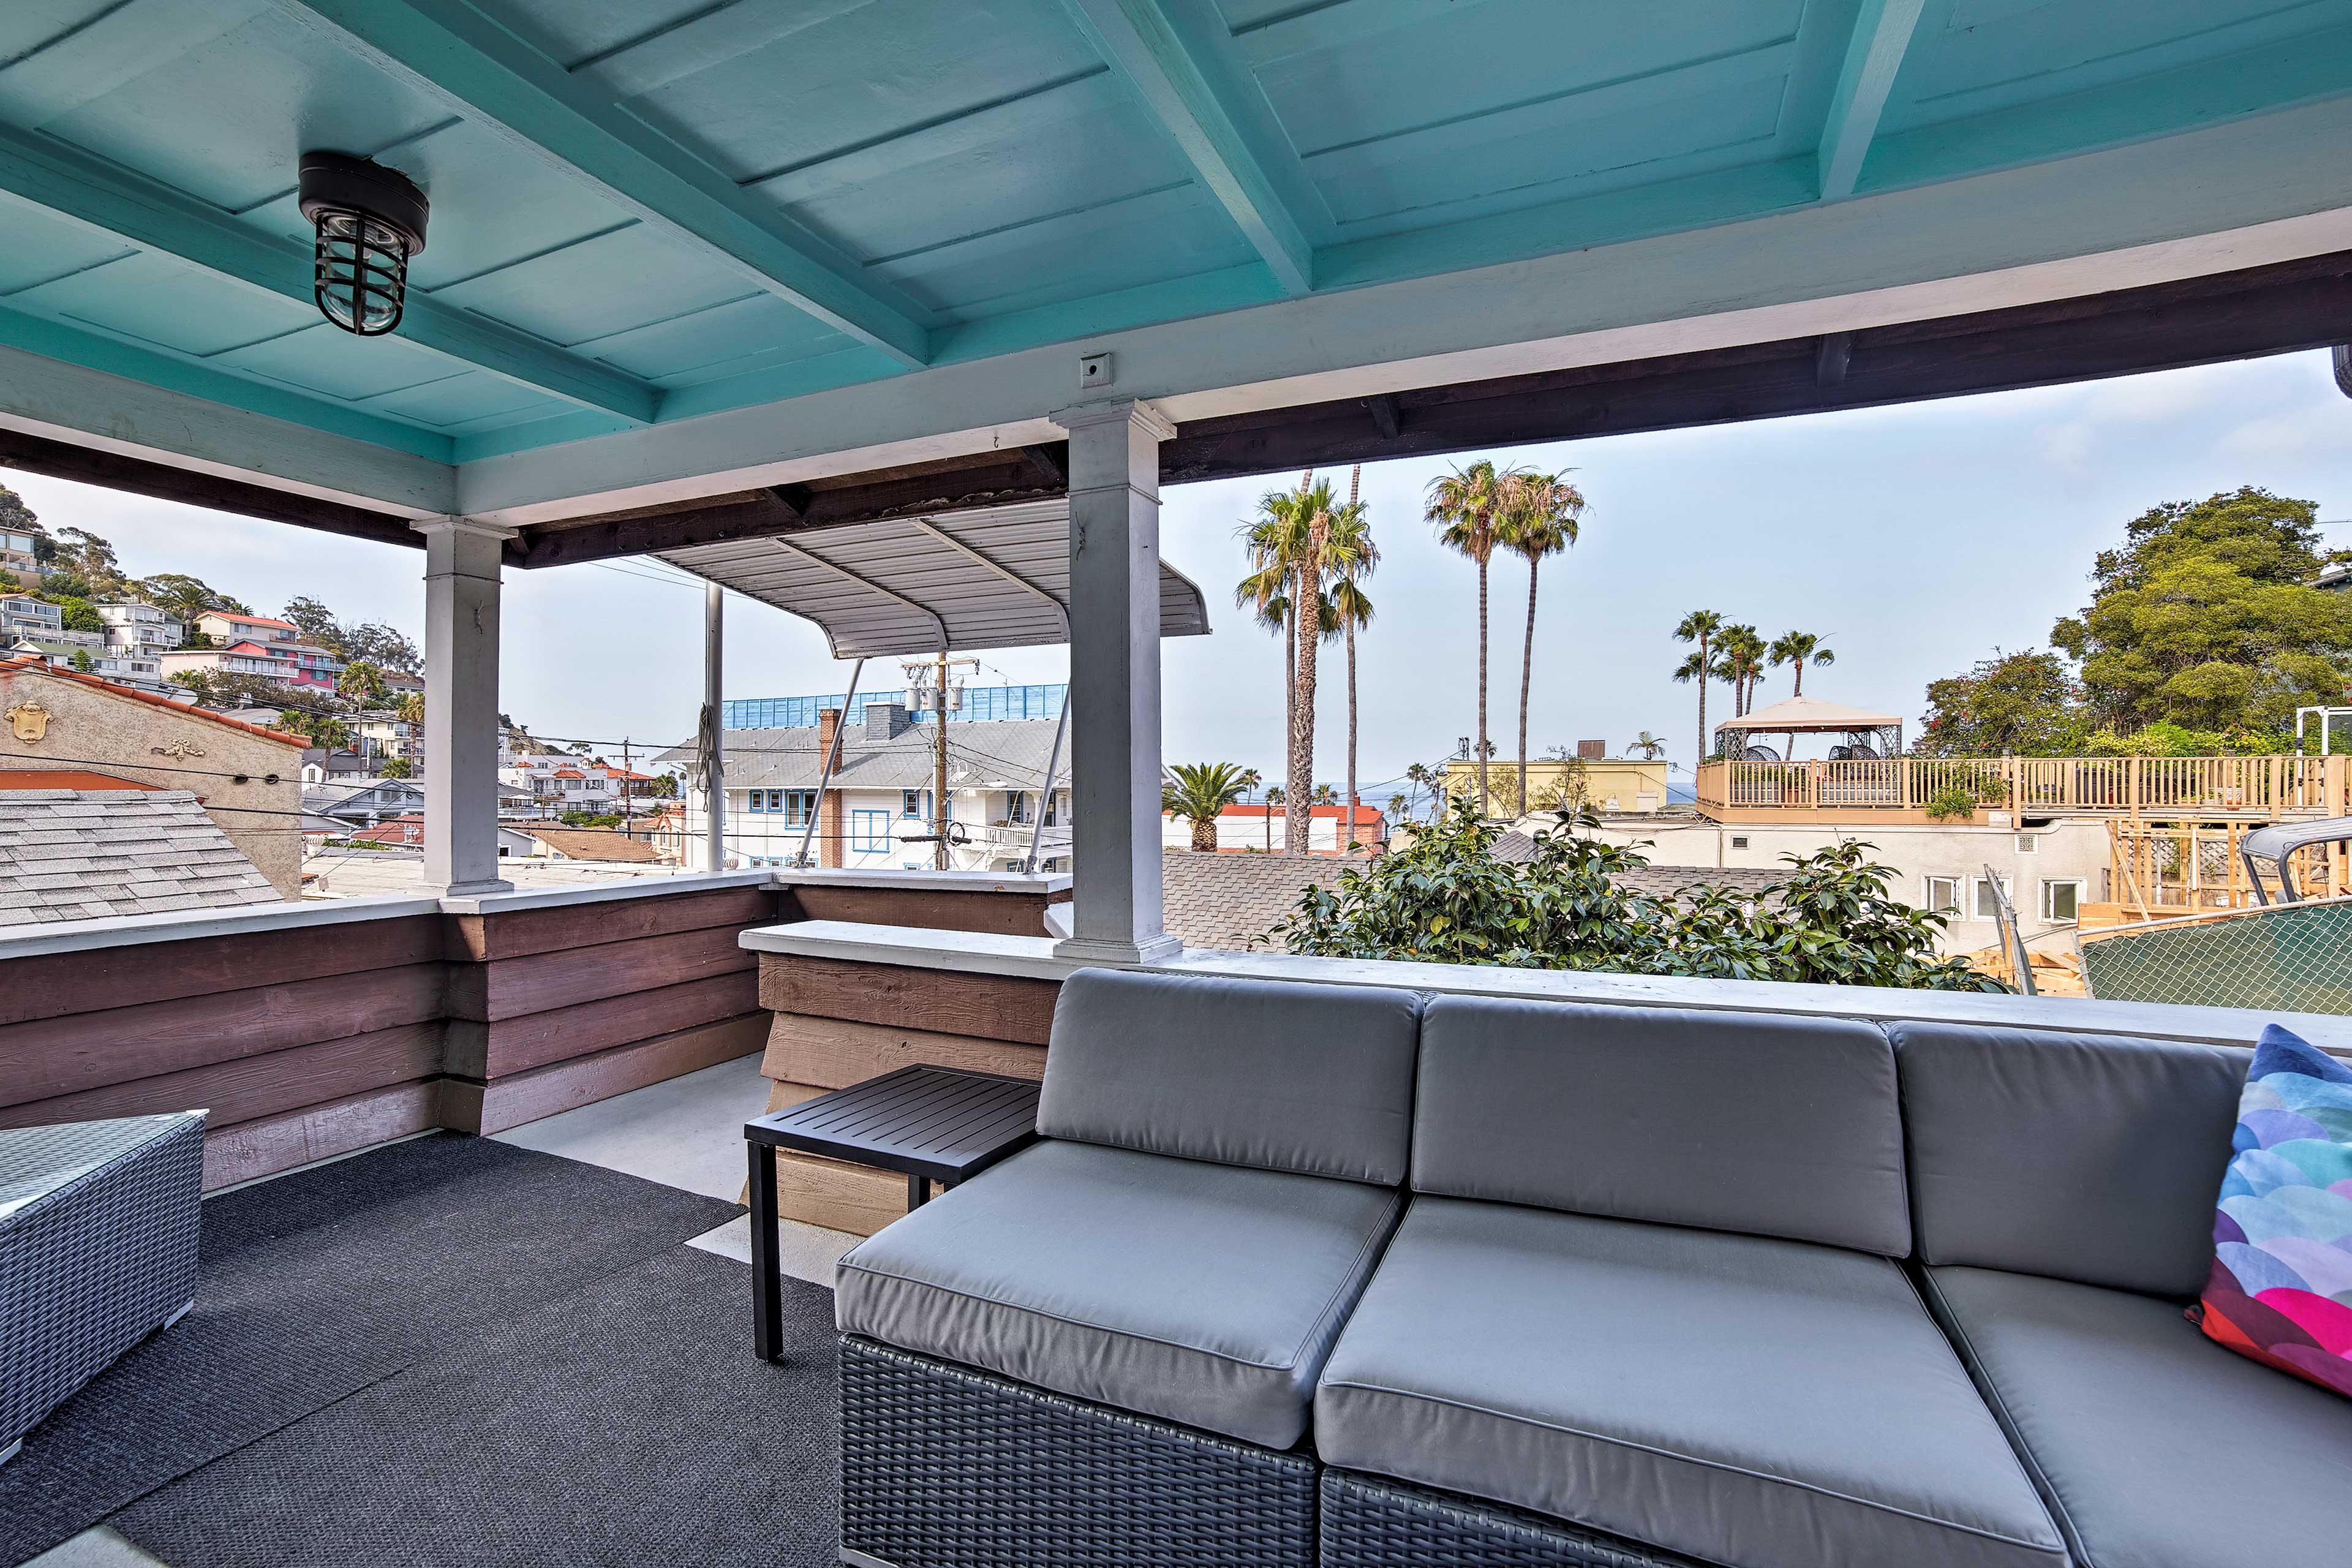 Hop over to Catalina Island and enjoy a sun-filled getaway in Avalon!